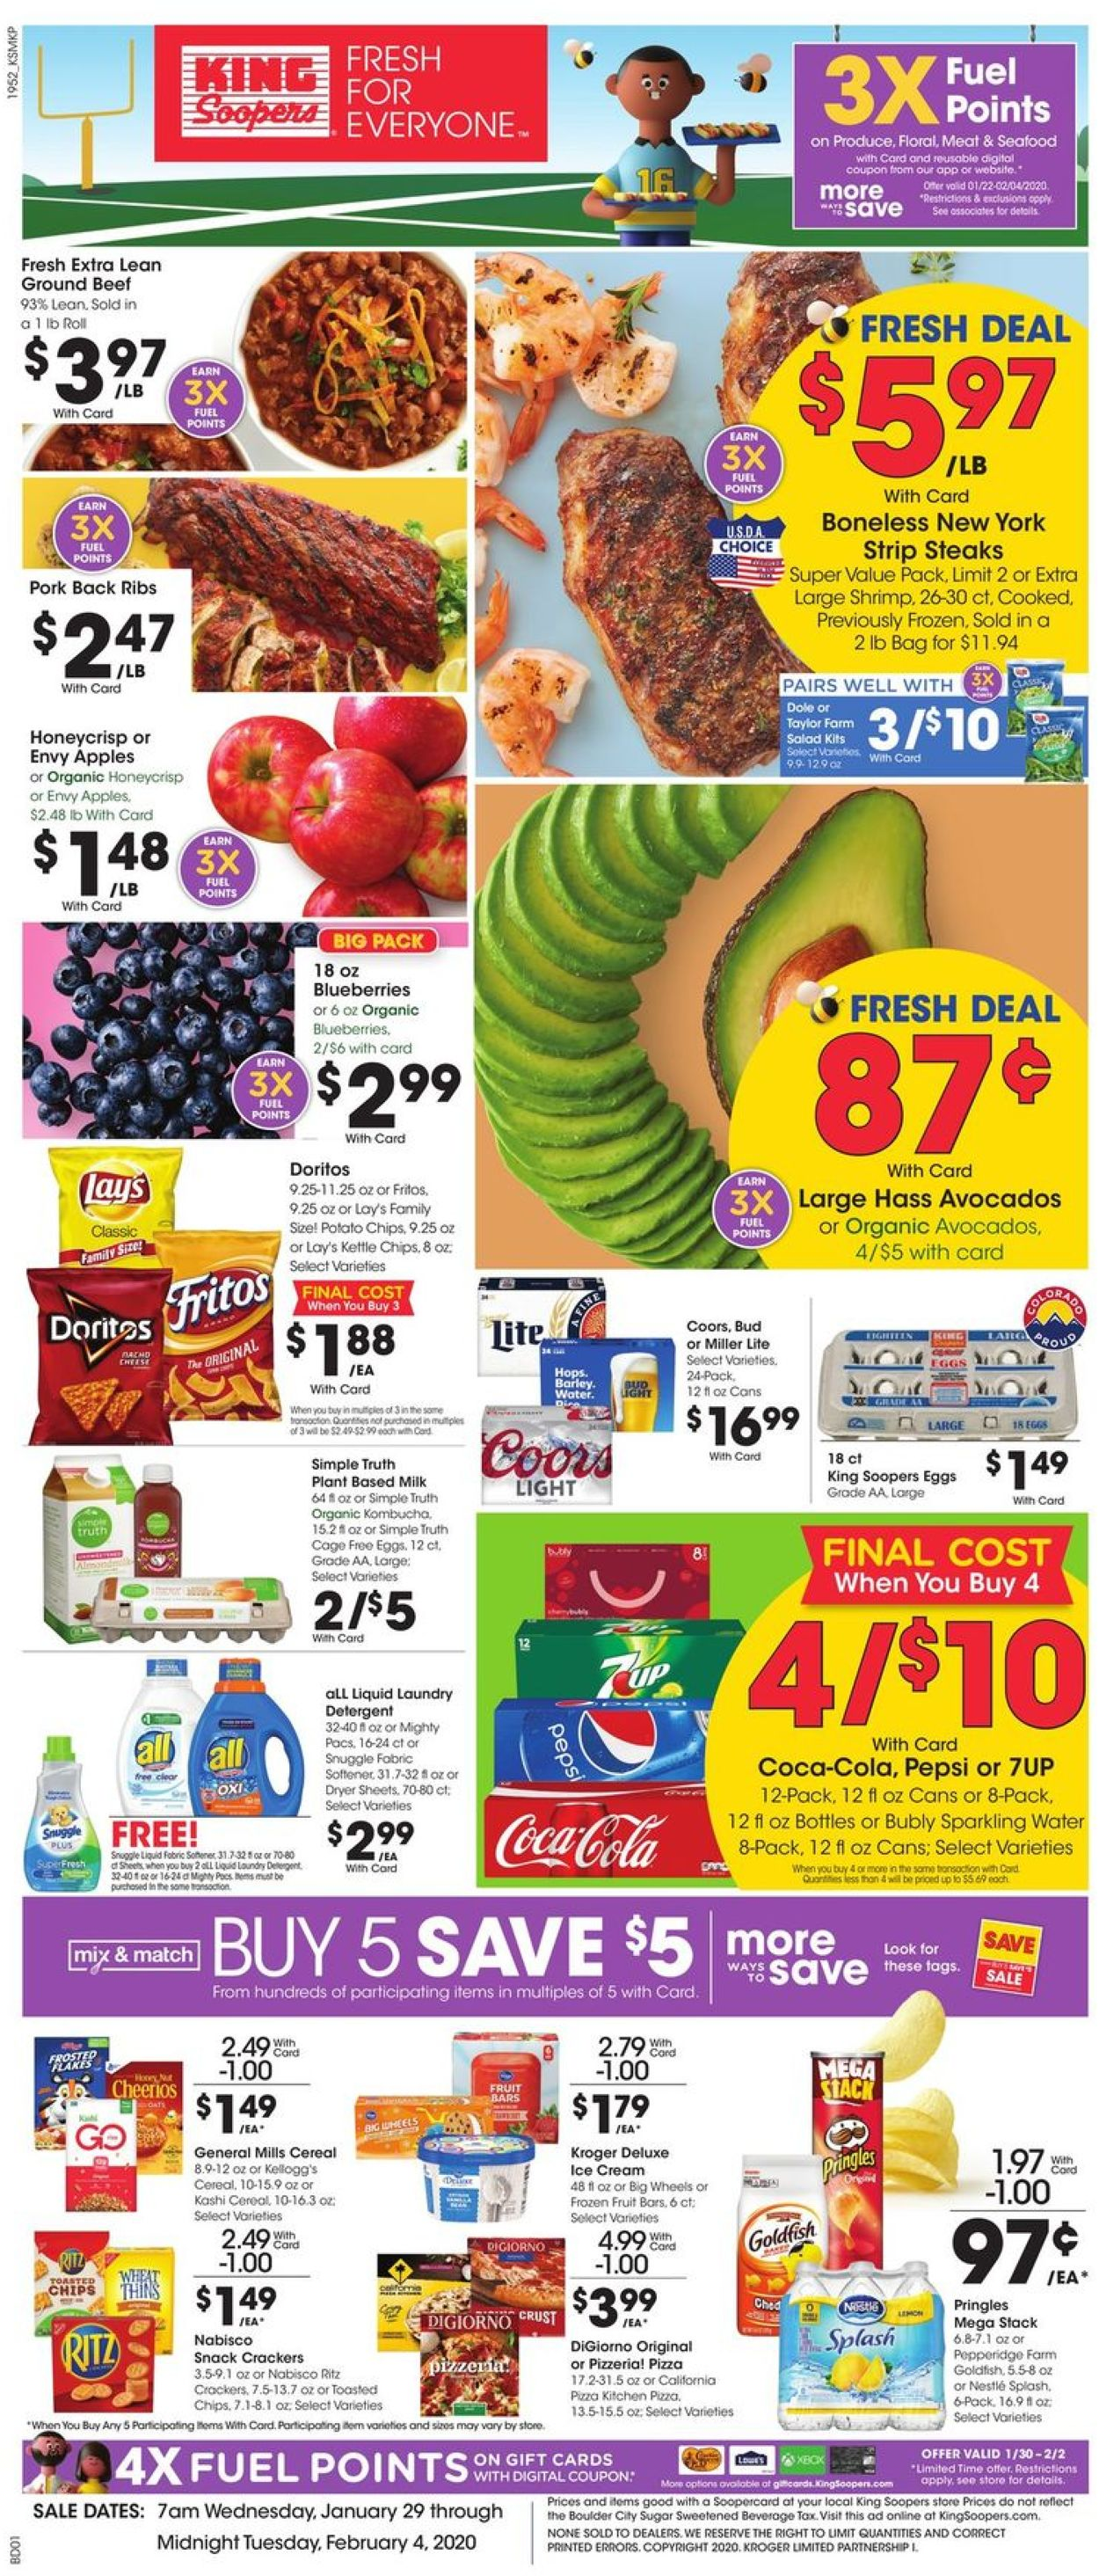 King Soopers Weekly Ad Circular - valid 01/29-02/04/2020